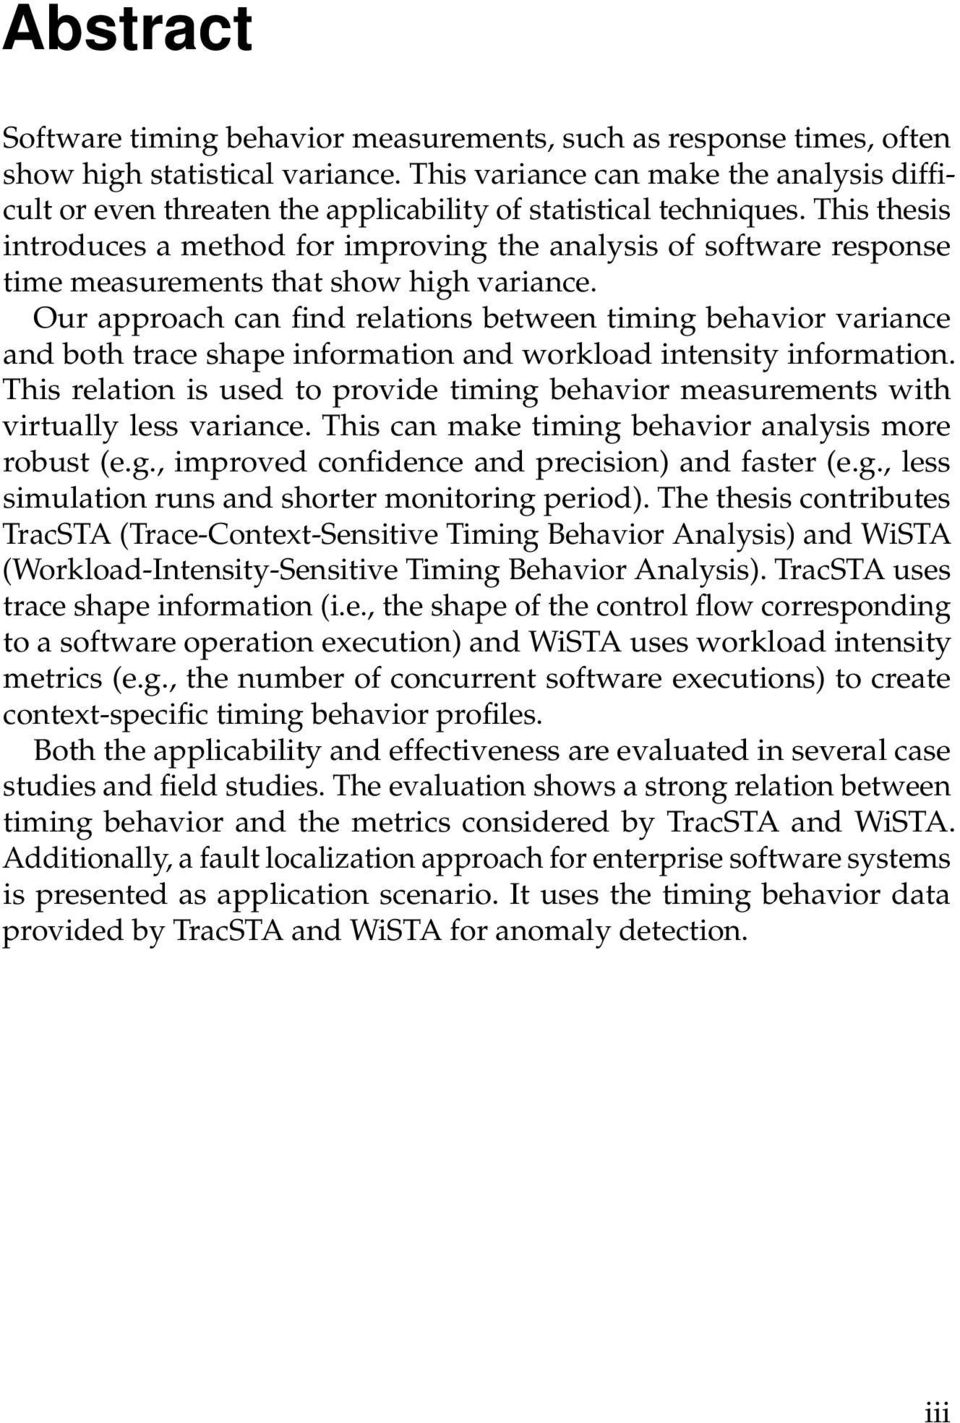 This thesis introduces a method for improving the analysis of software response time measurements that show high variance.